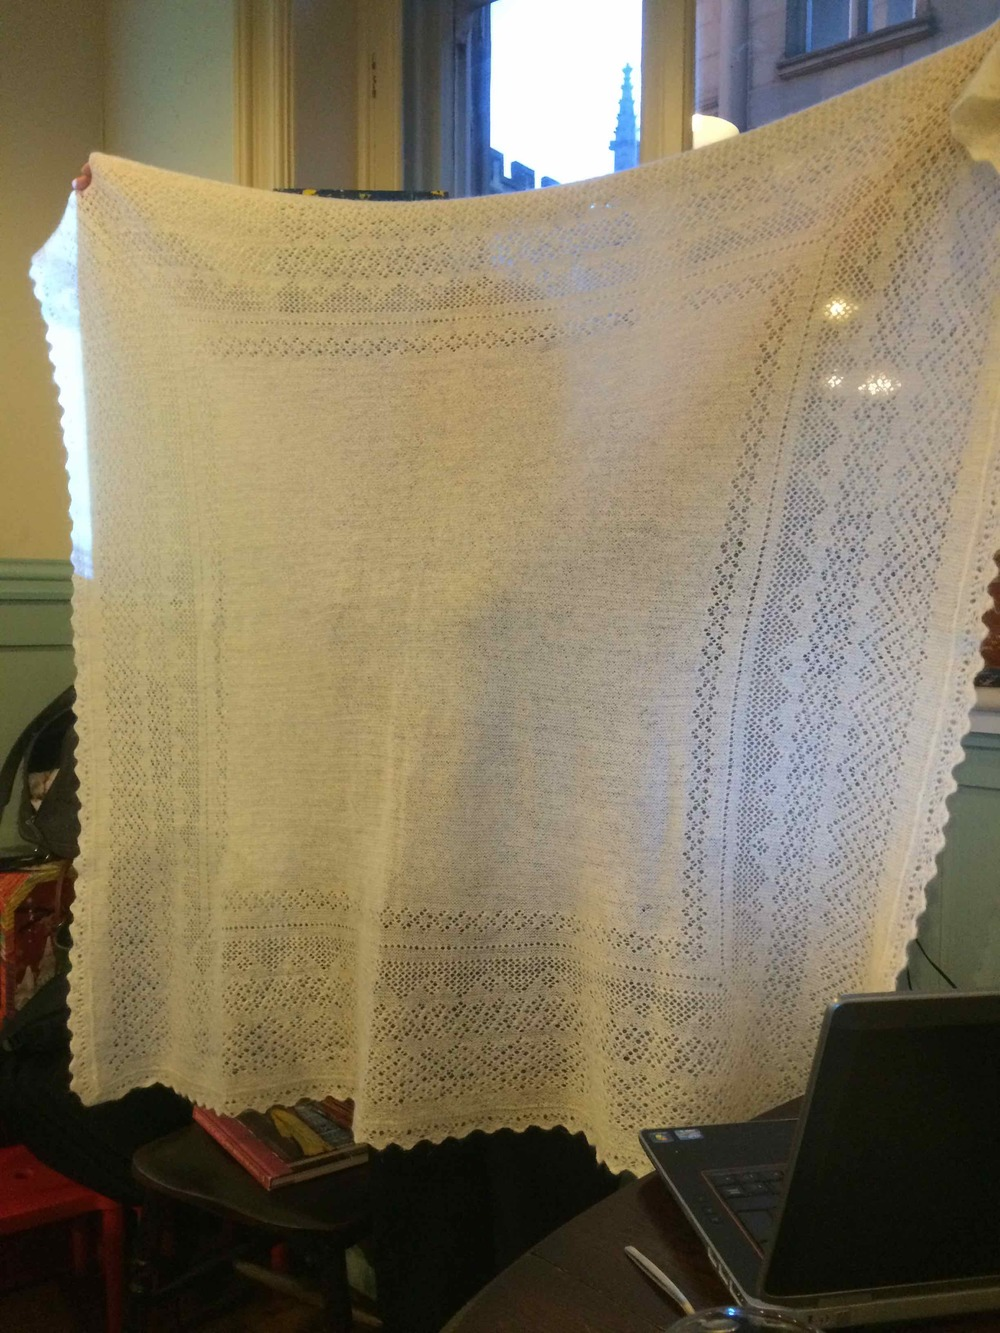 Orenburg shawl belonging to Angharad